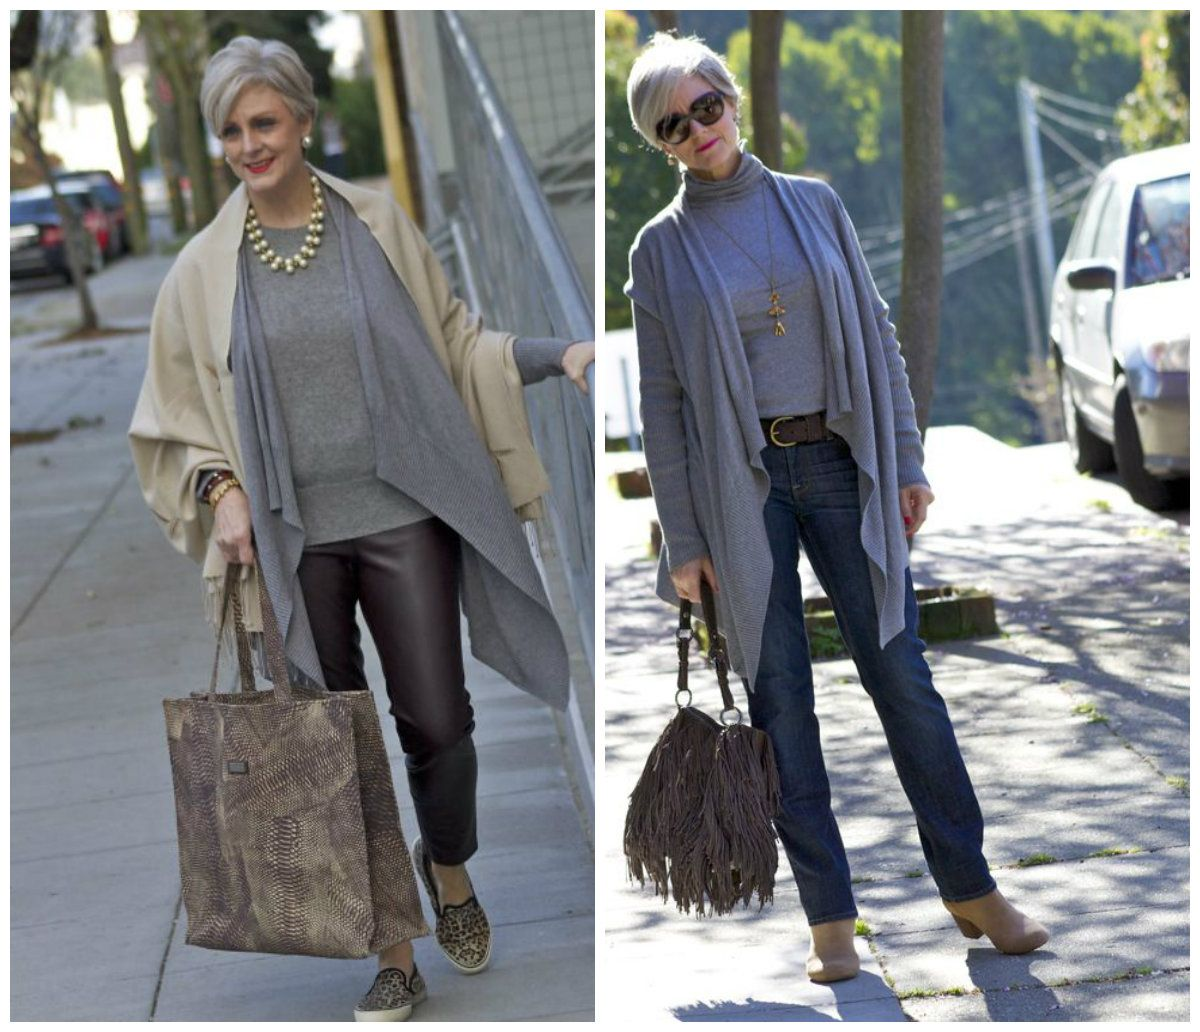 c6af7d4177ca 20 of the Most Stylish Ageless Women - Stylish Older Women 41